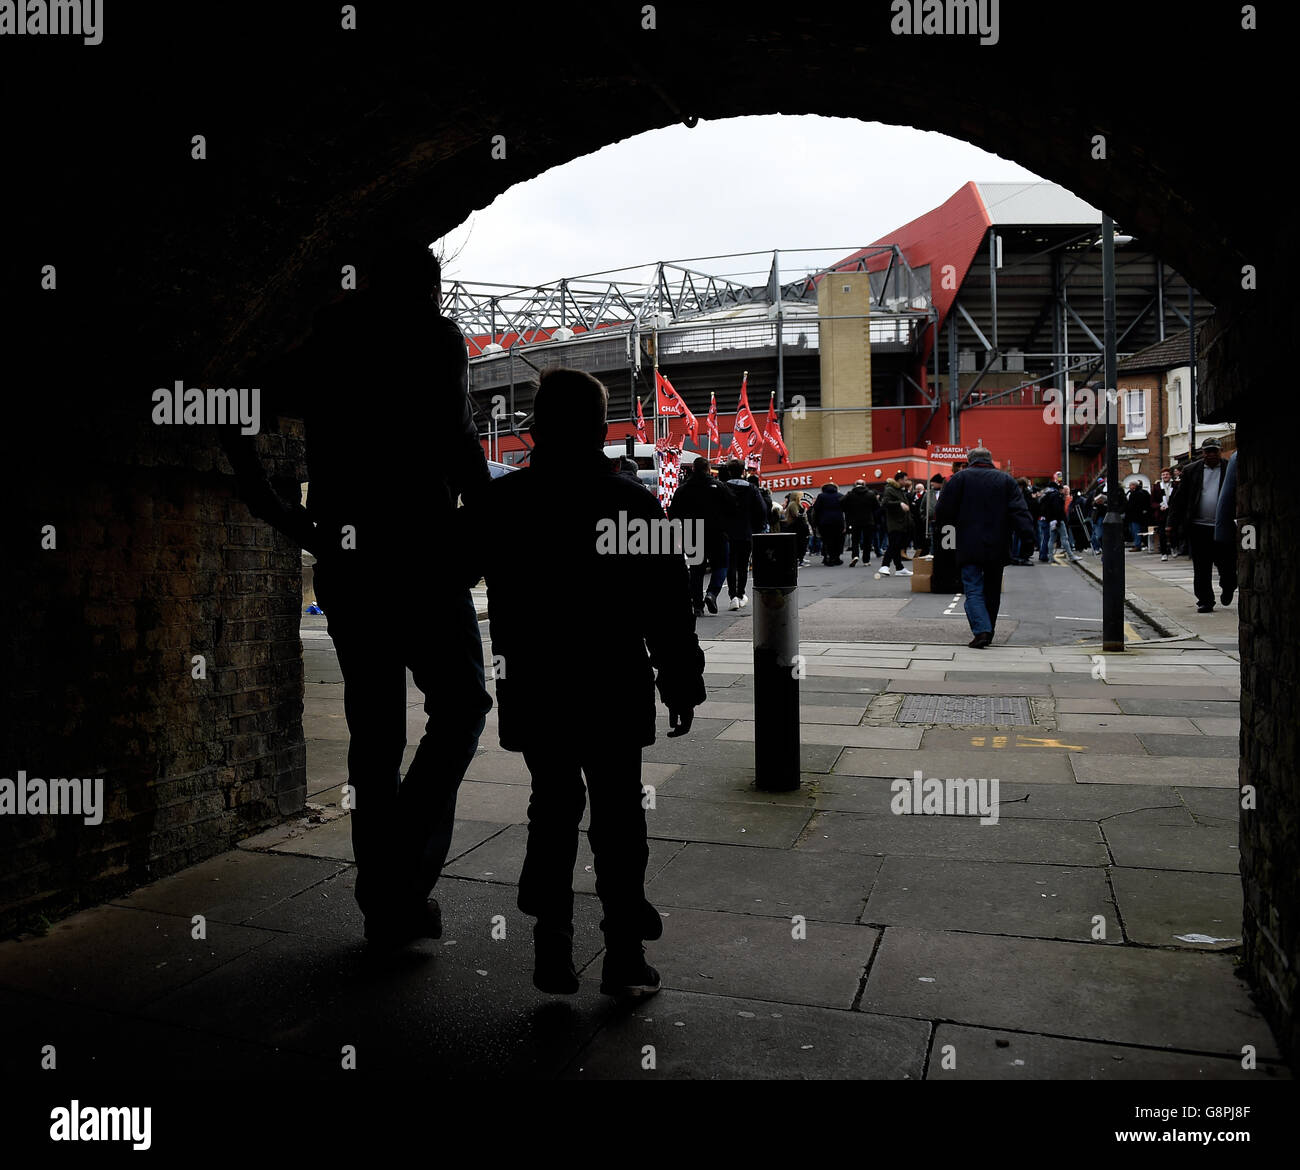 Charlton Athletic v Reading - Sky Bet Championship - The Valley Stock Photo